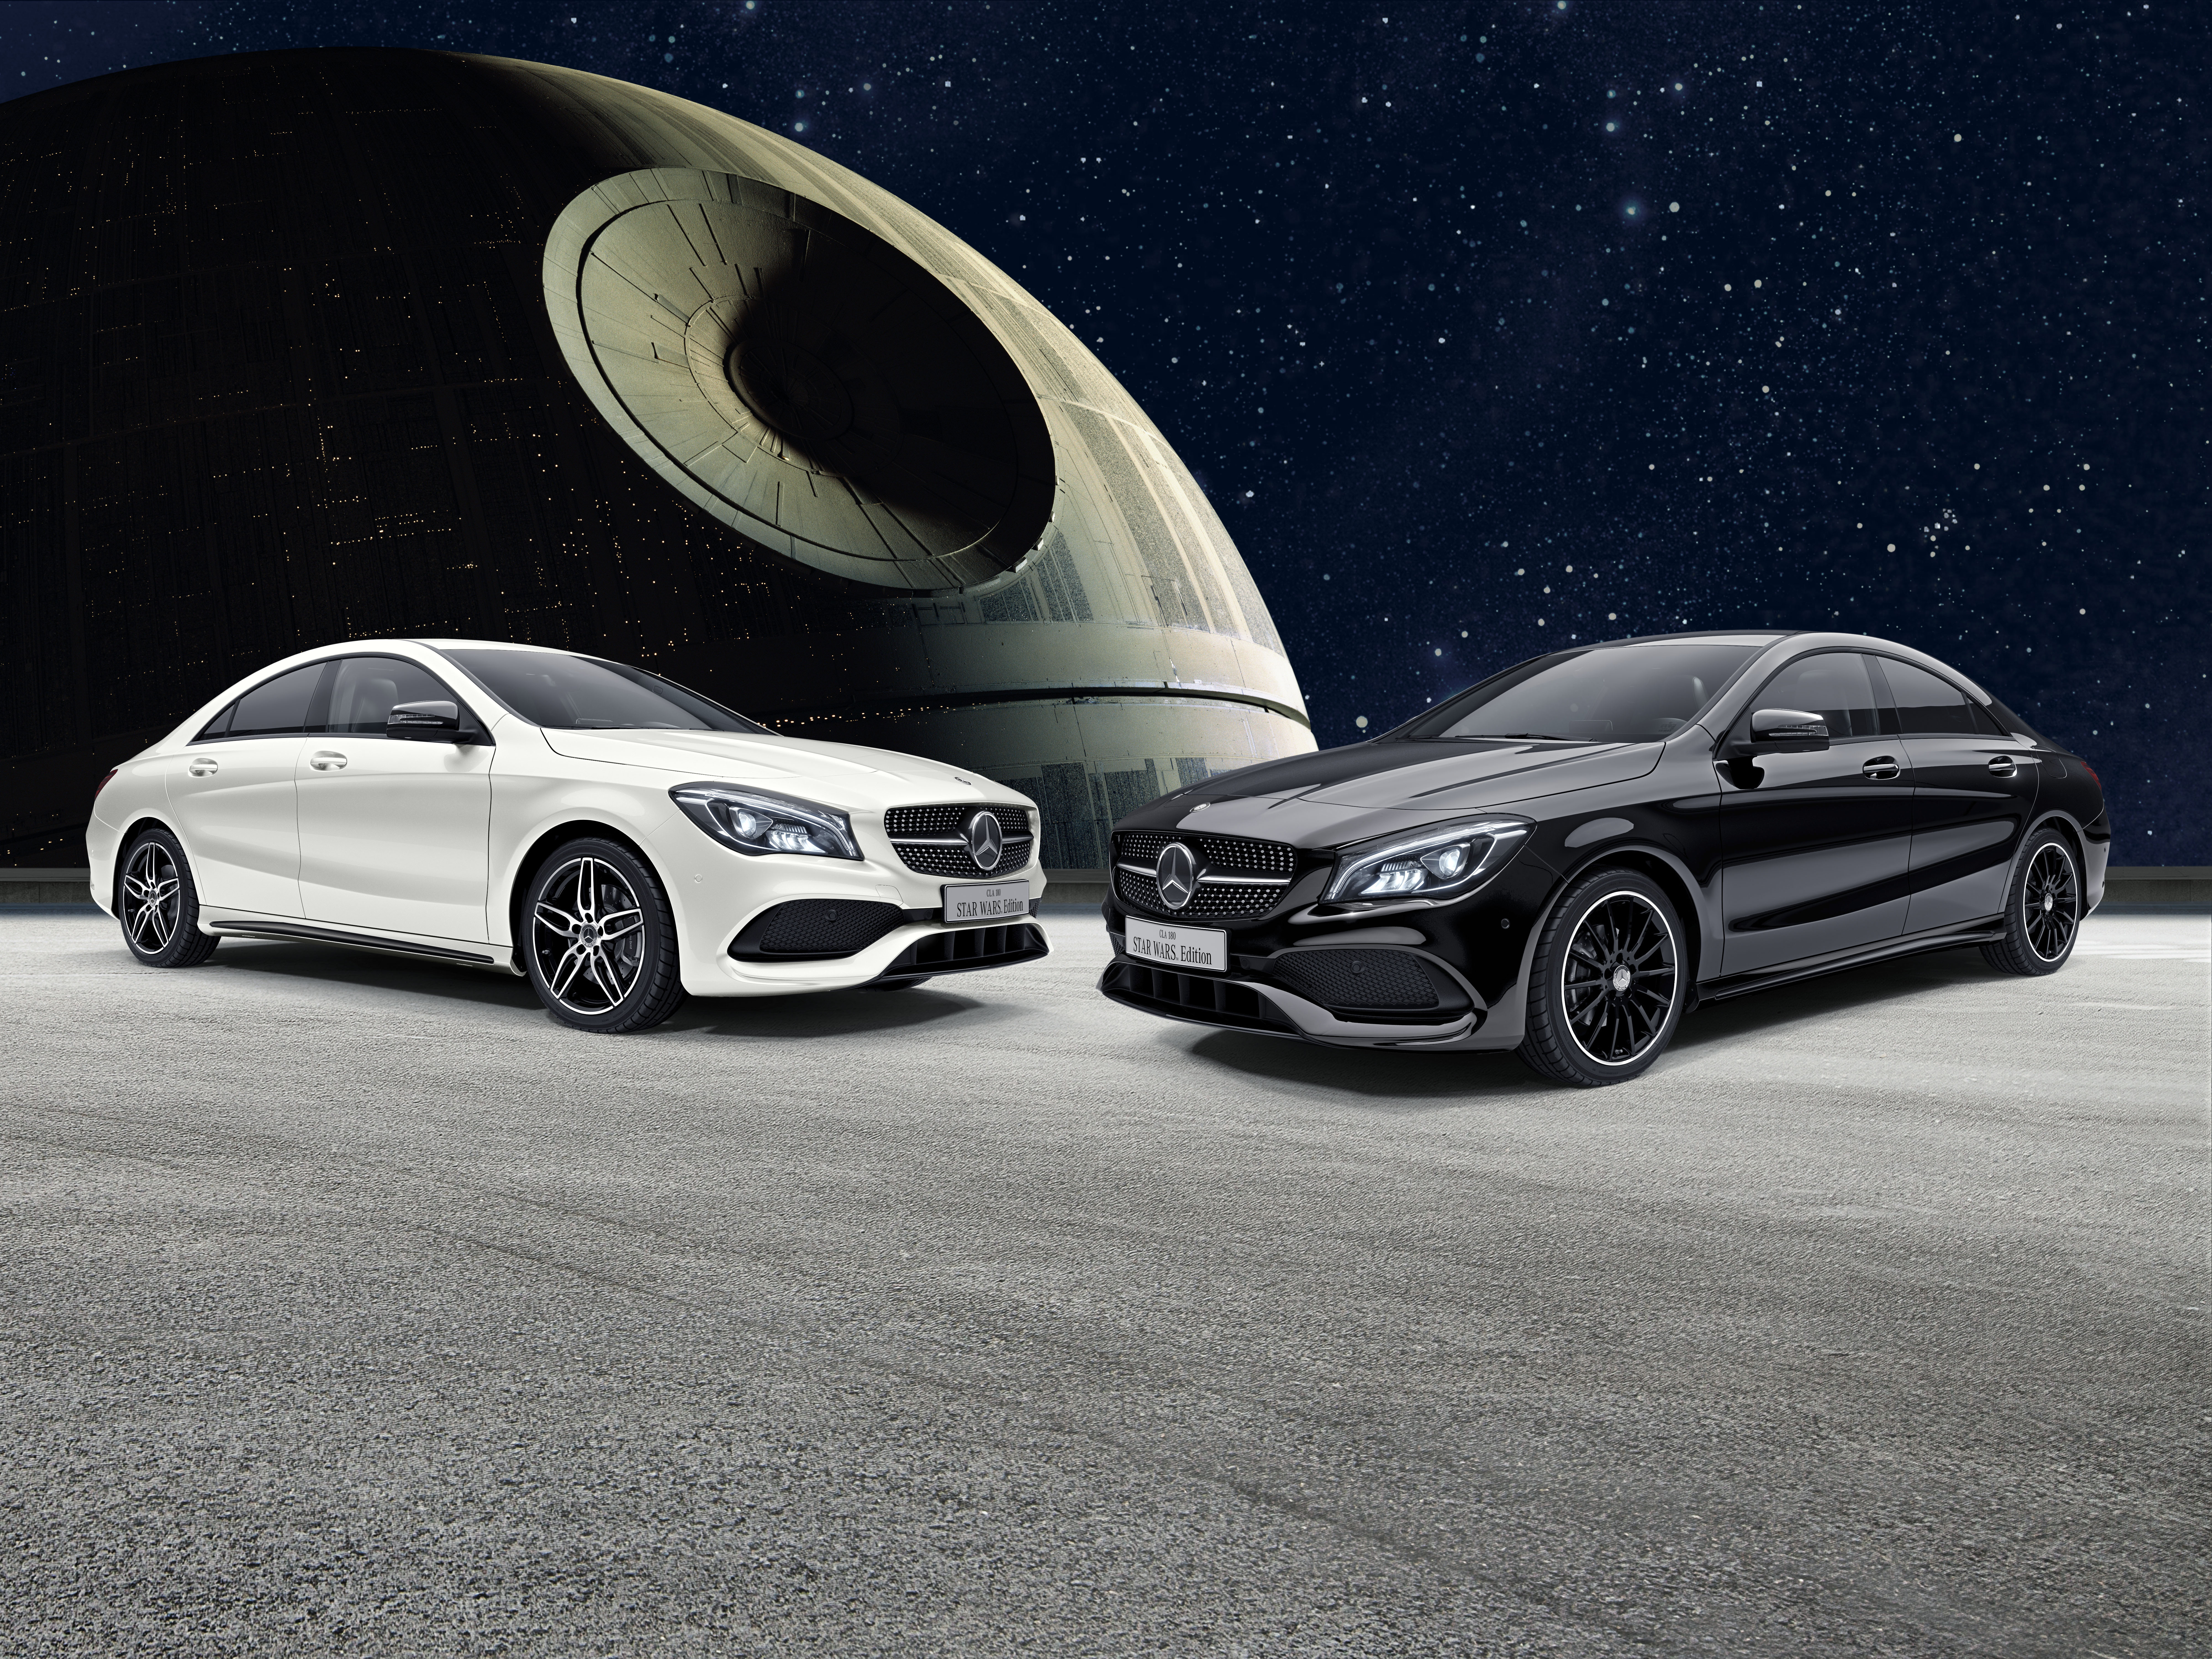 Mercedes benz cla gets star wars themed special edition in for New cla mercedes benz